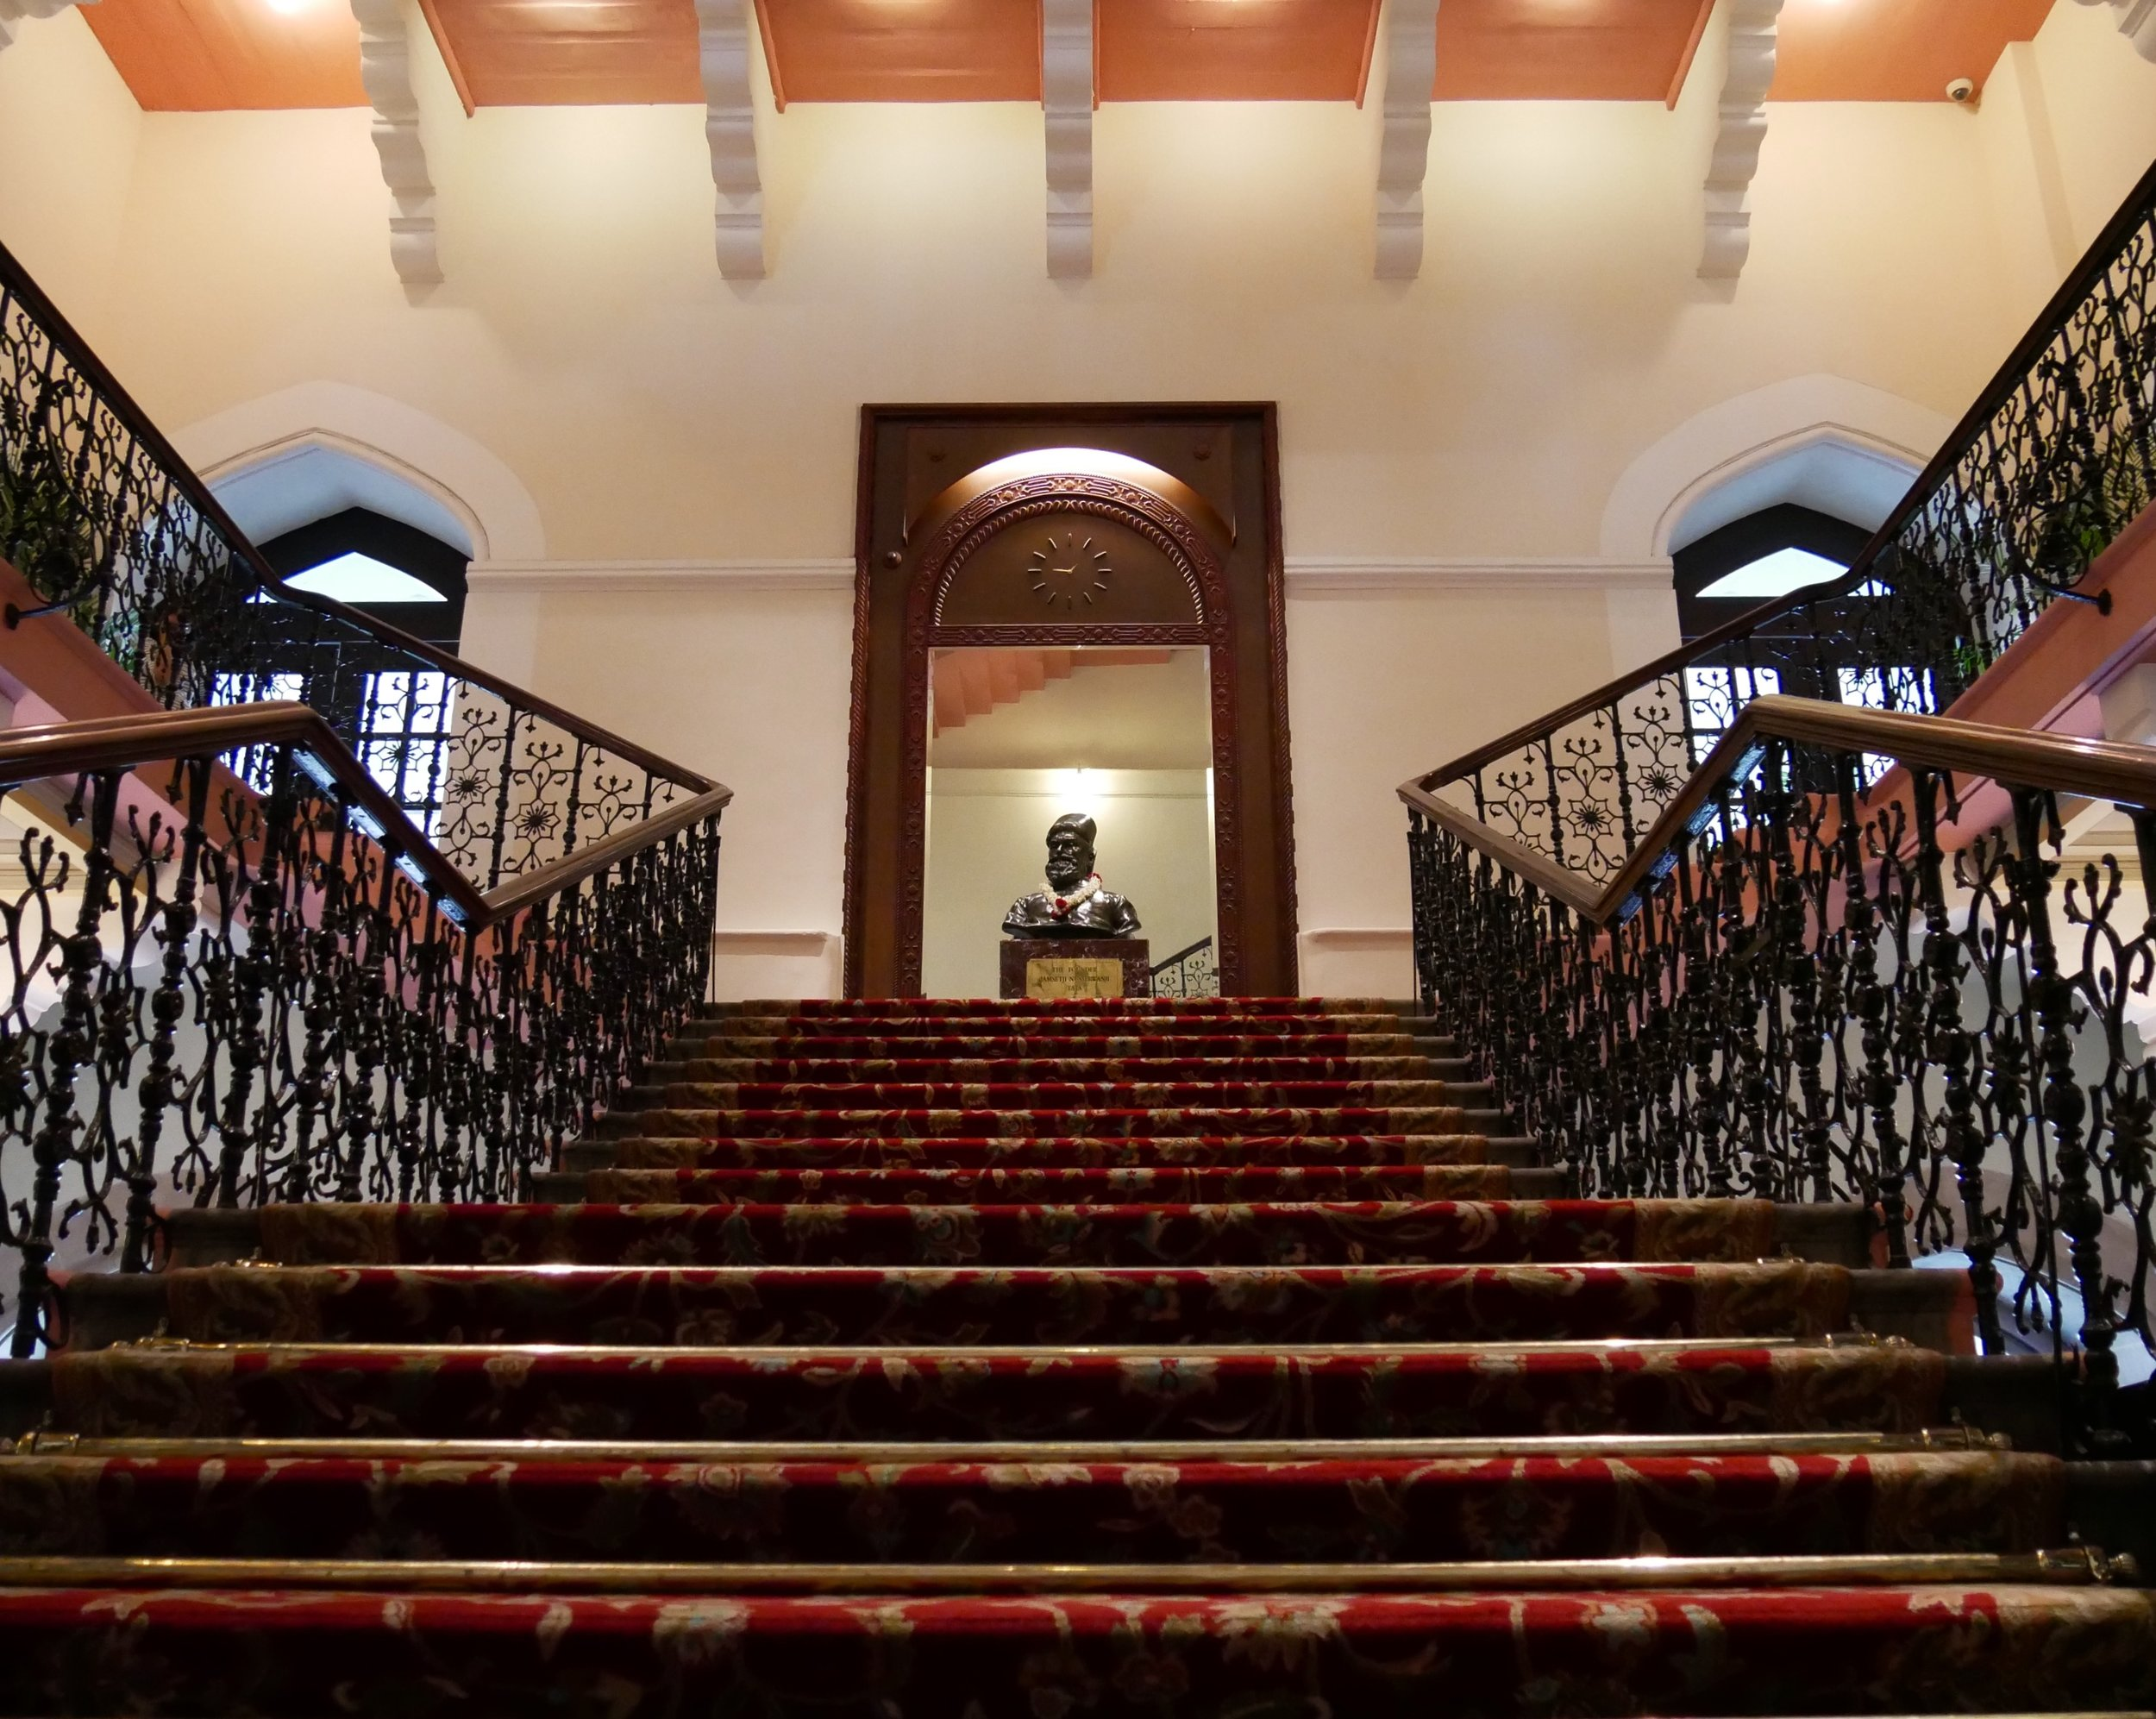 The main staircase in the hotel